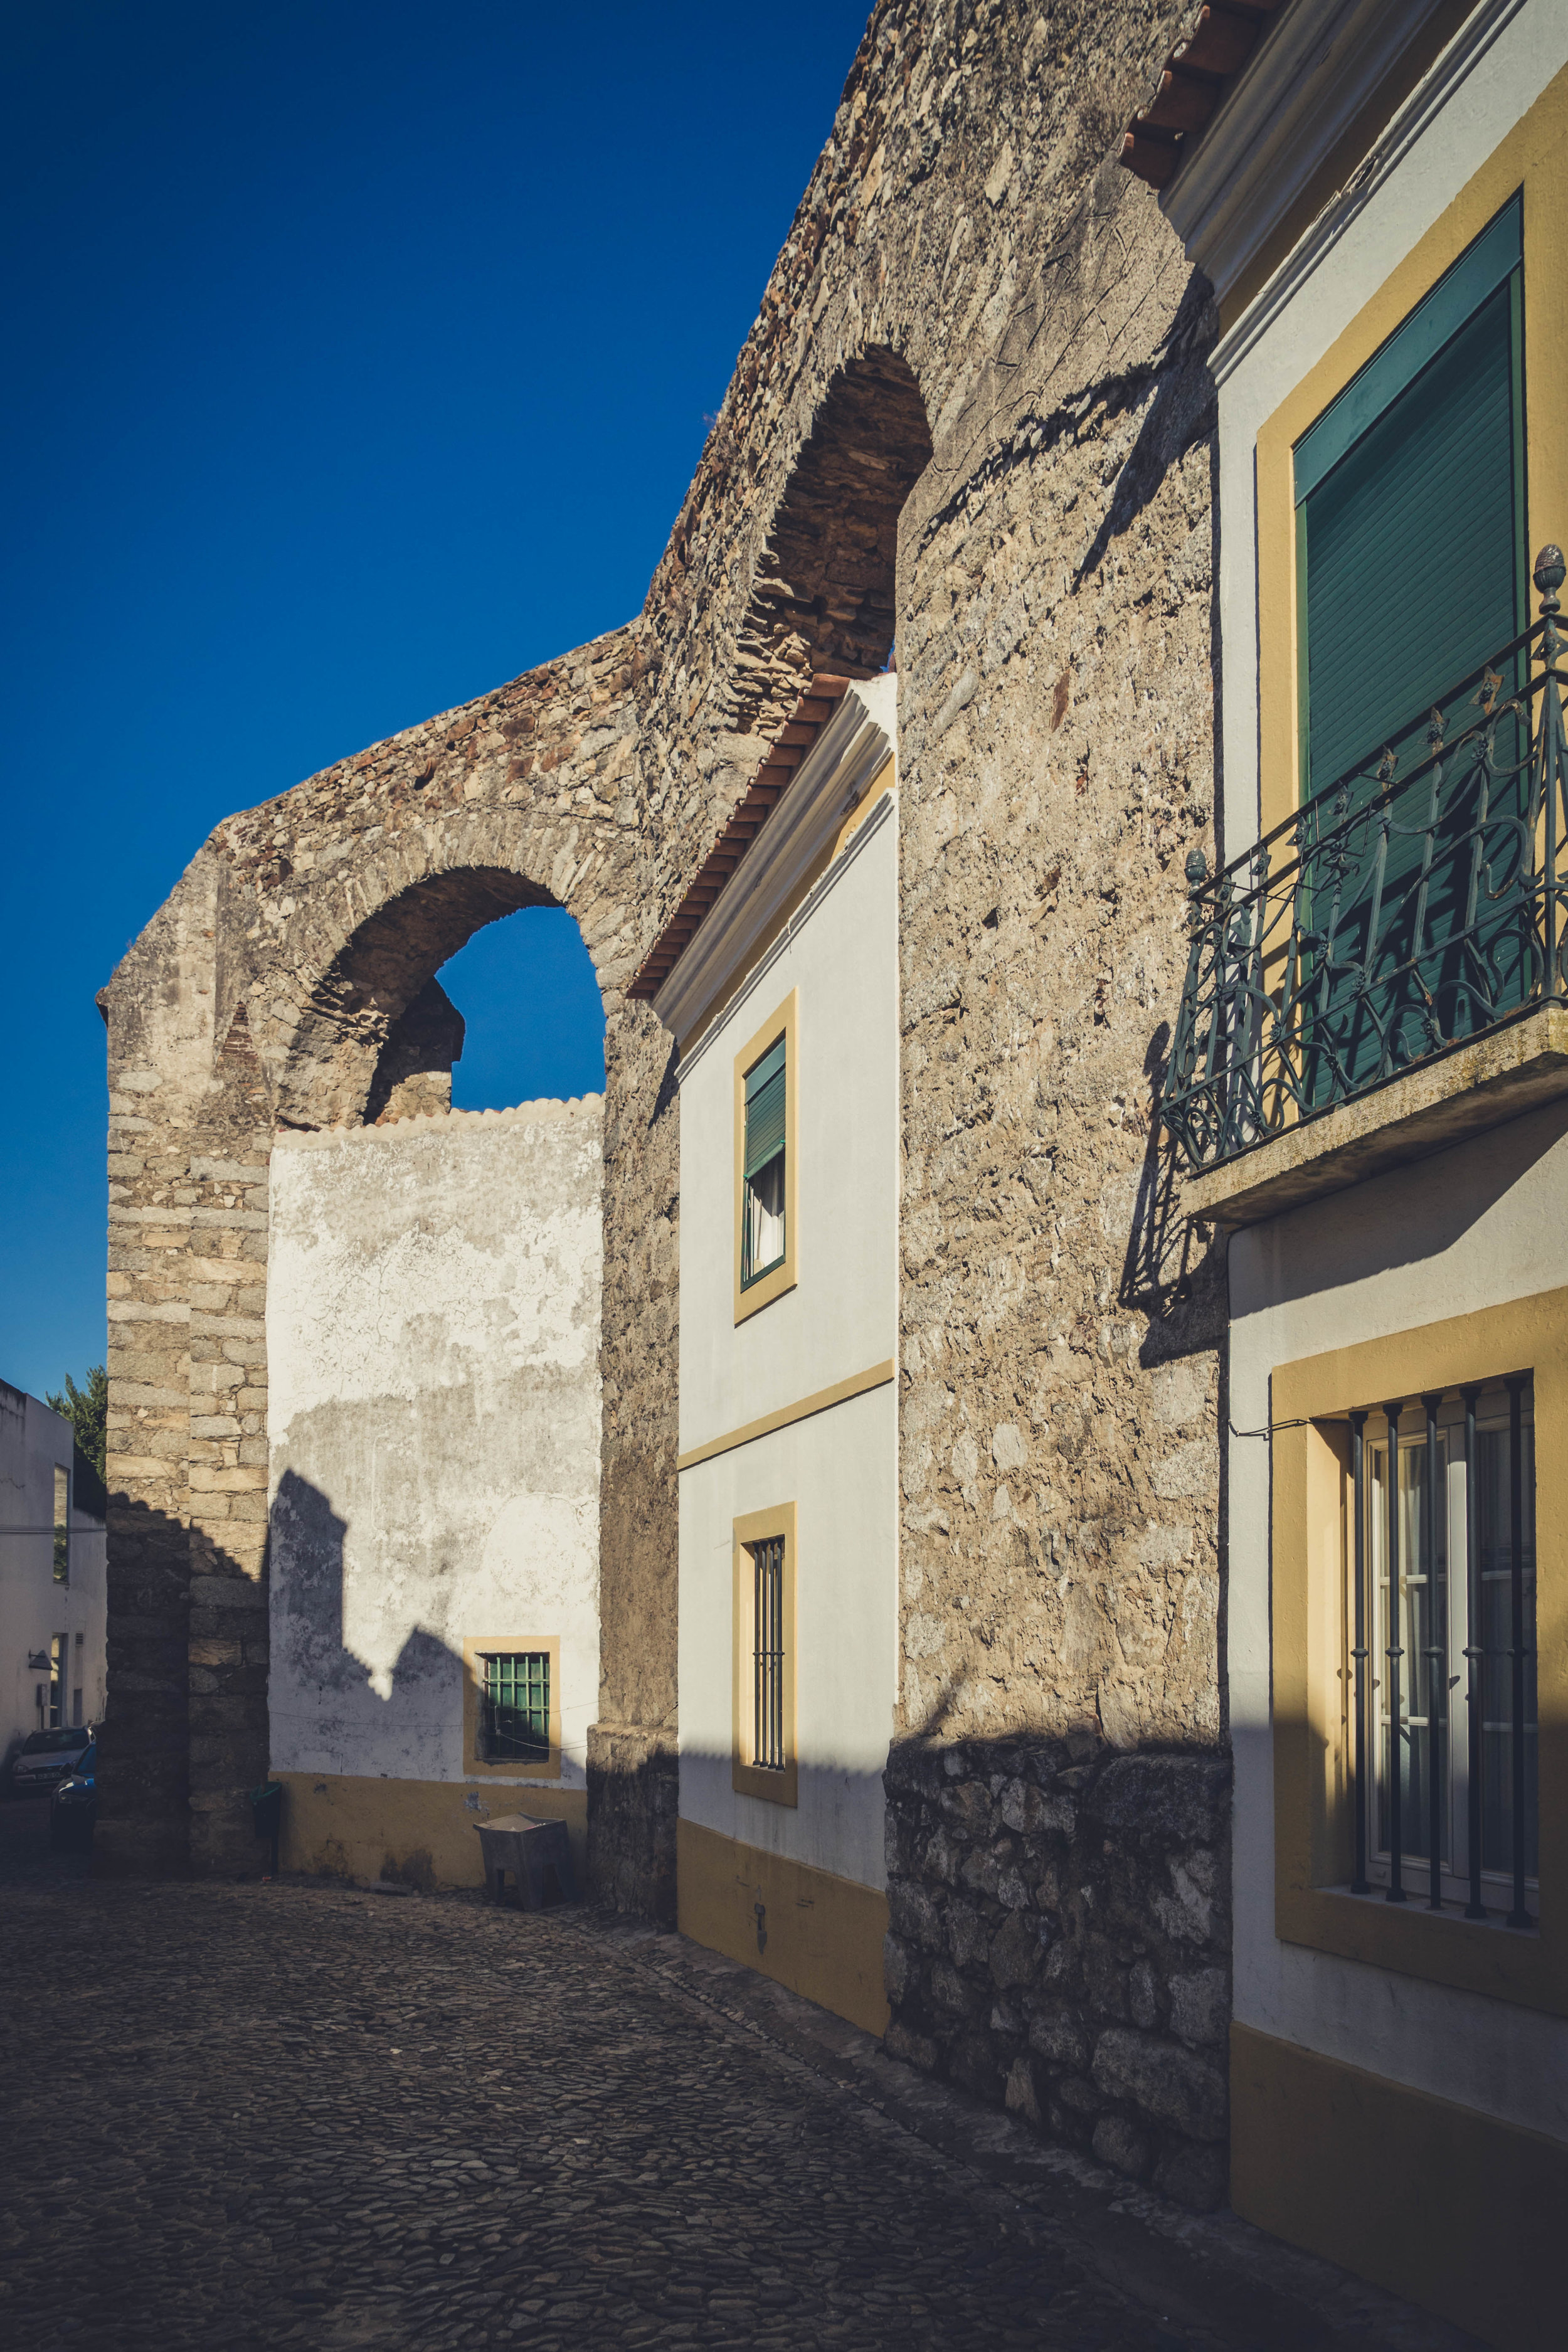 Evora. Roman Ruins. Portugal. Alentejo. Piliers. Roman city. ancient roman town. walking through street travel. adventure. history. historical. architecture. aqueduct.....jpg